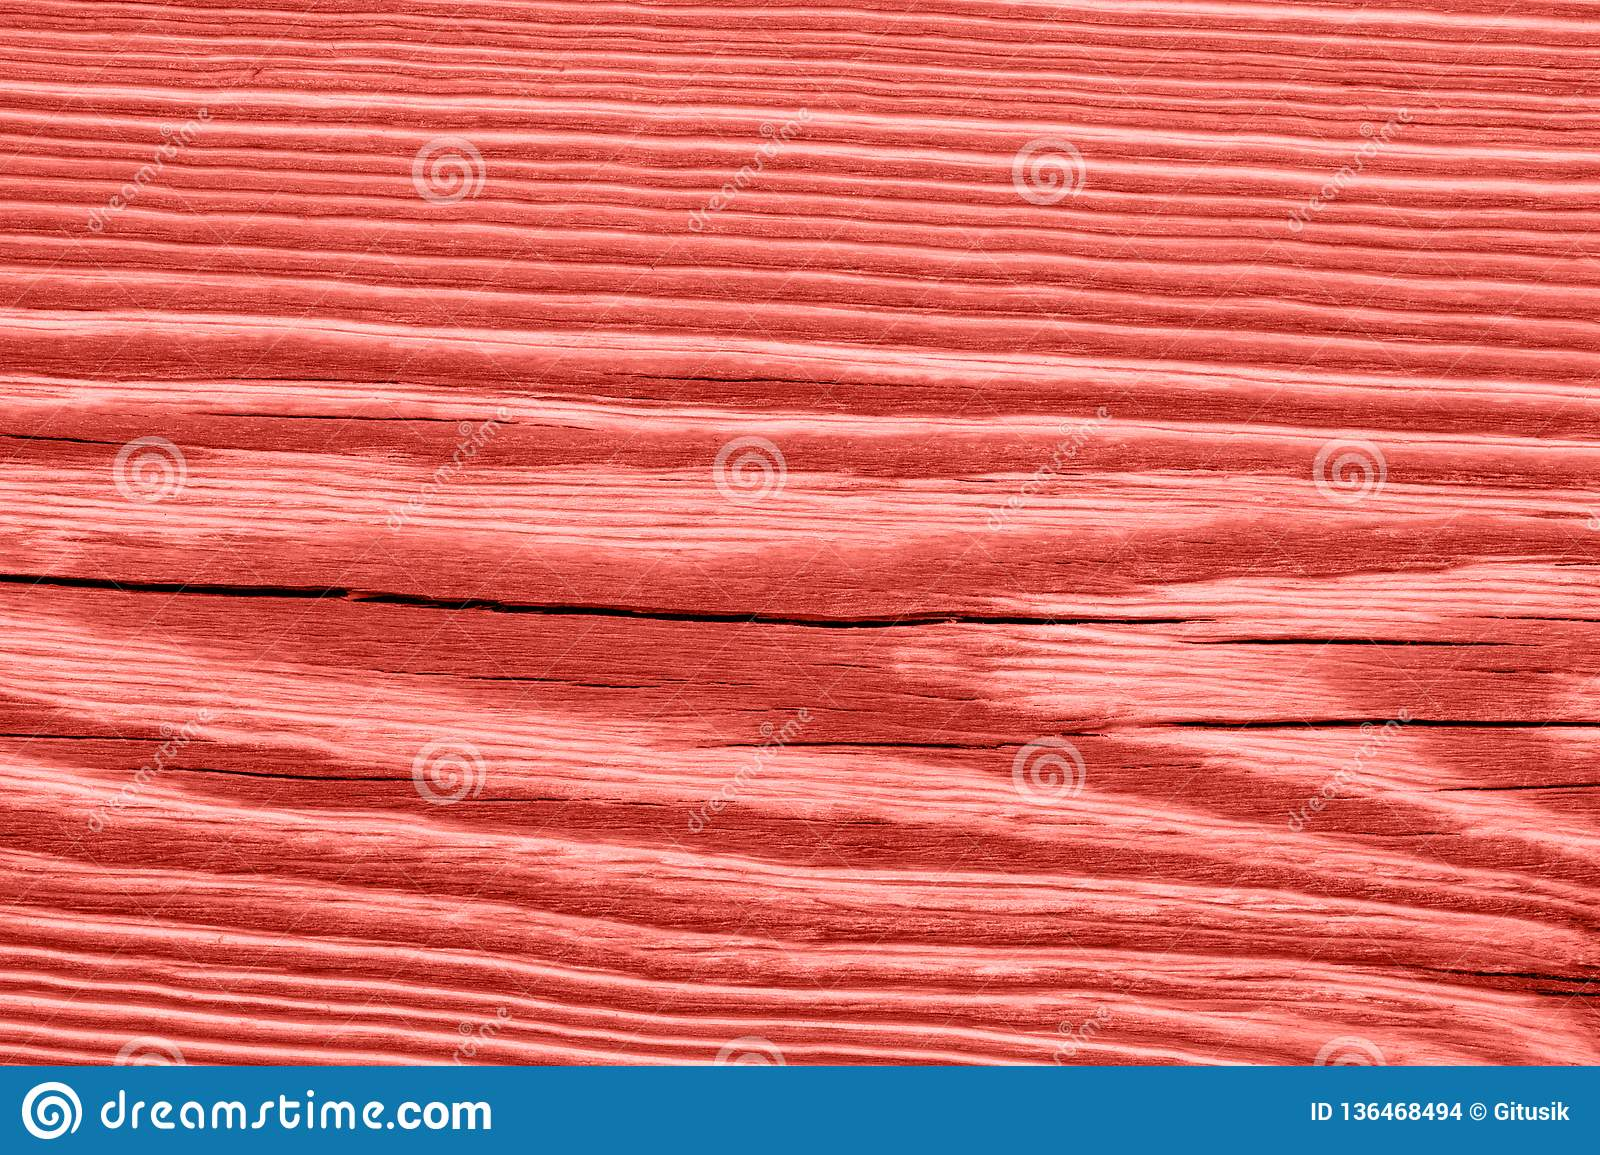 Vintage living coral wood texture. Abstract background